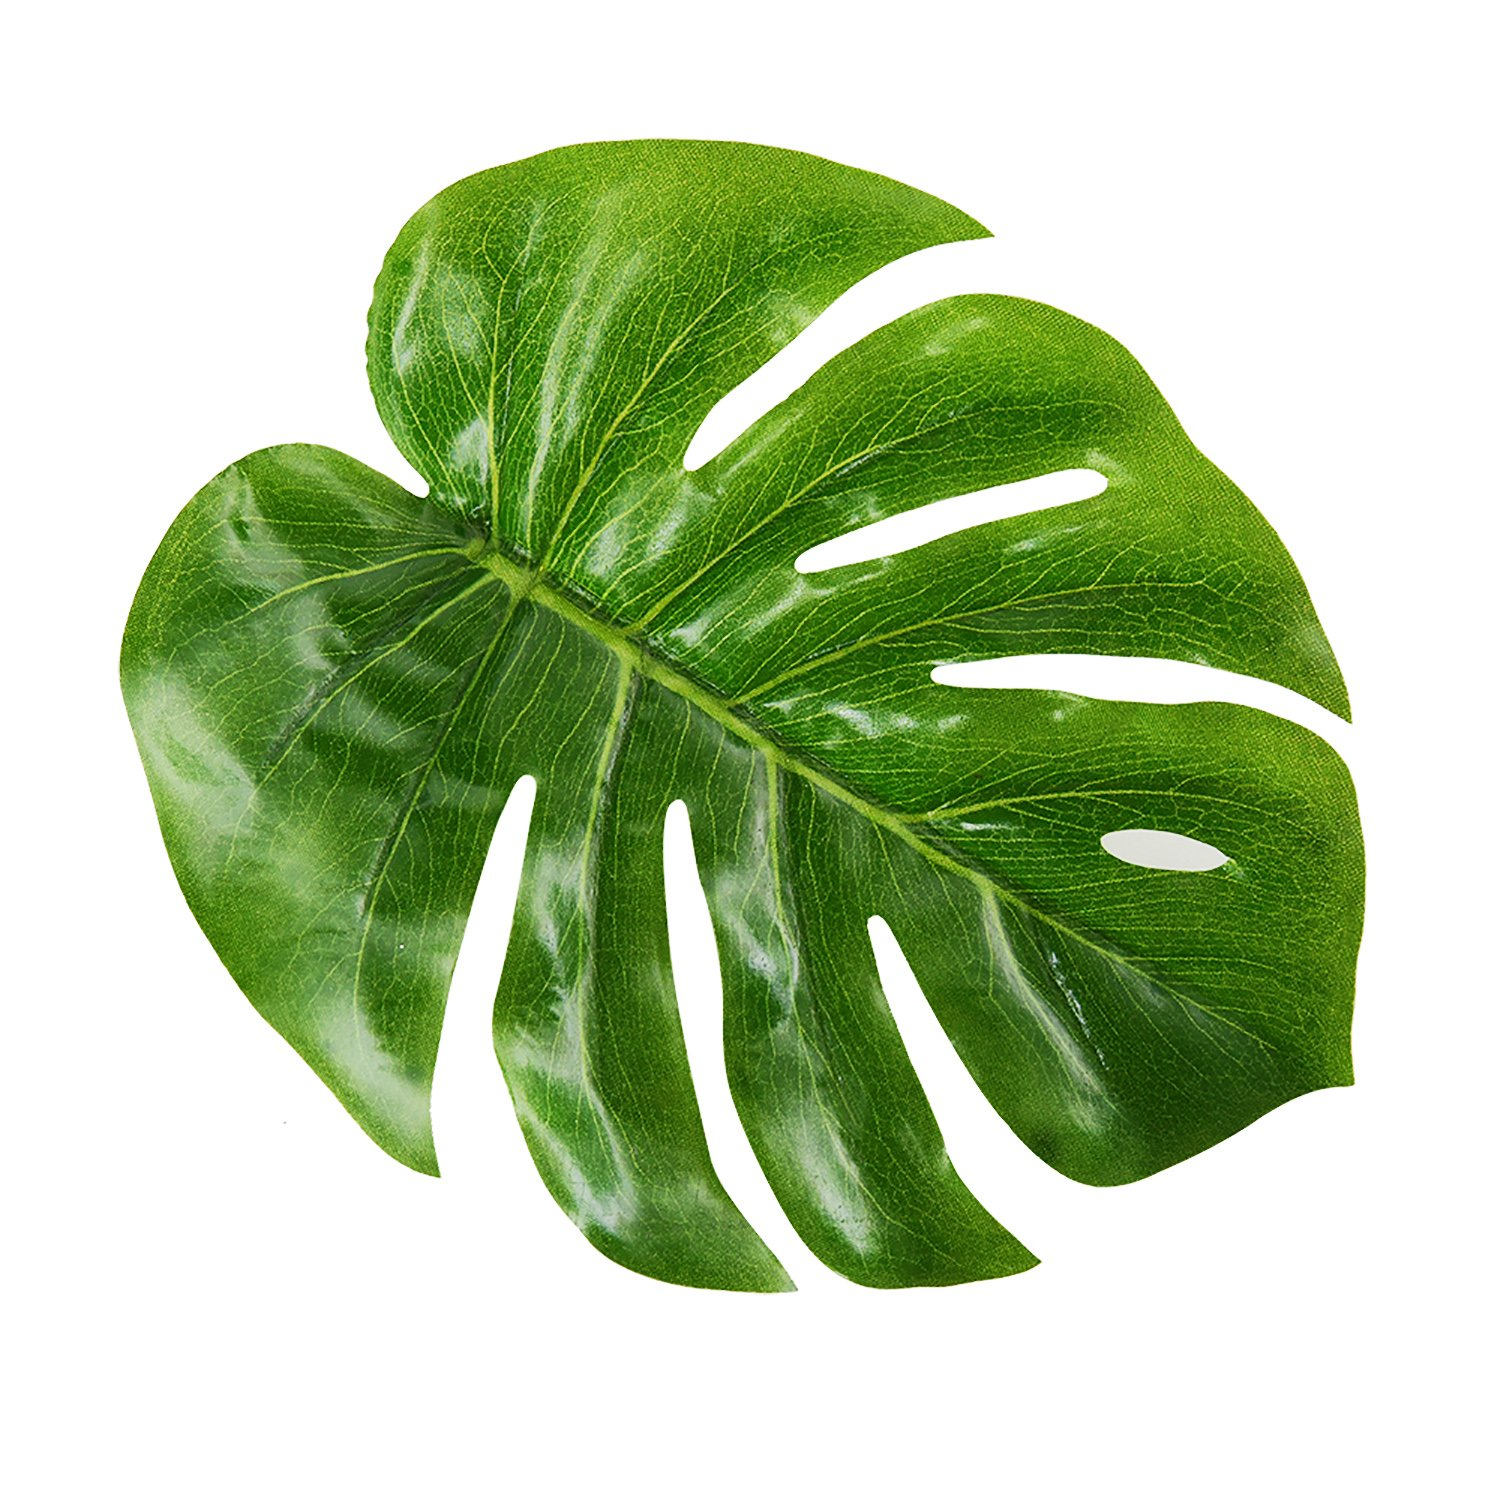 Blulu 18 Pack Tropical Imitation Plant Leaves, 8 Inches, Green